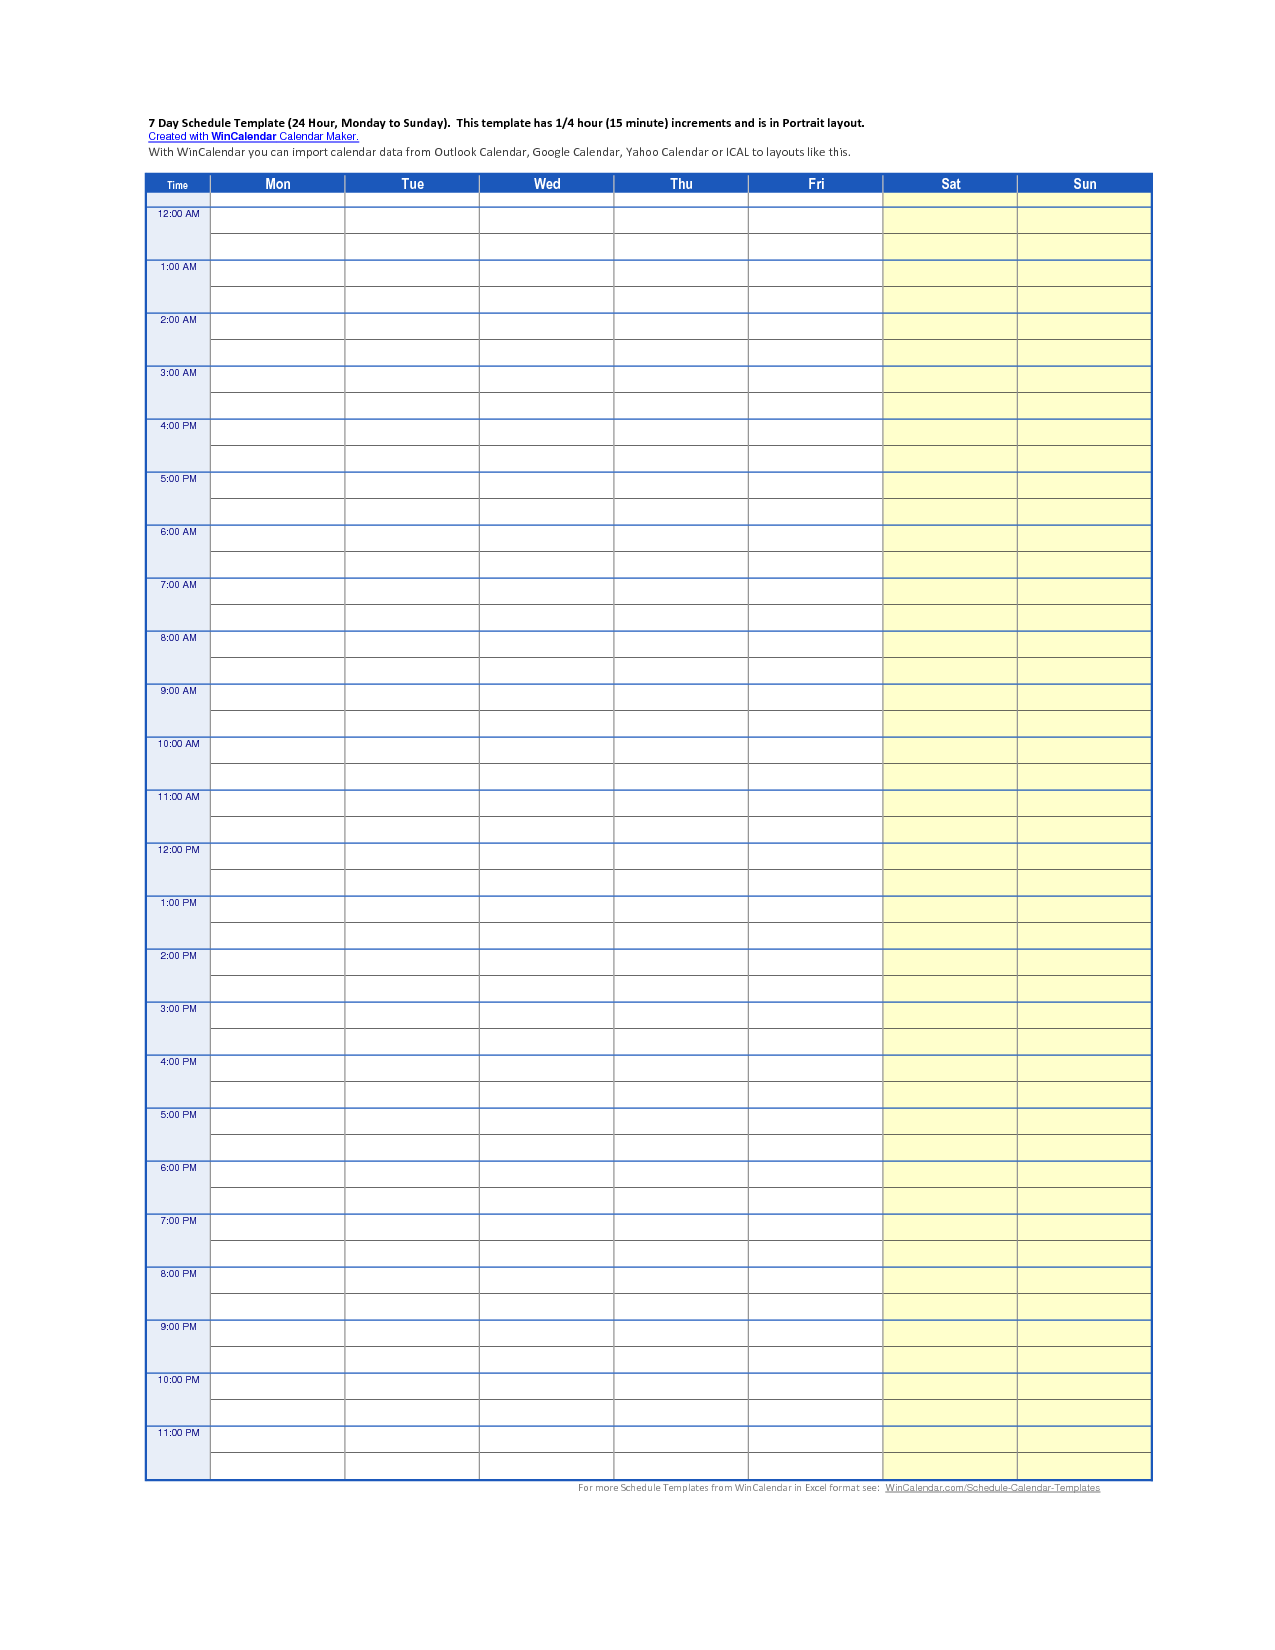 24 Hour Day Schedule Template